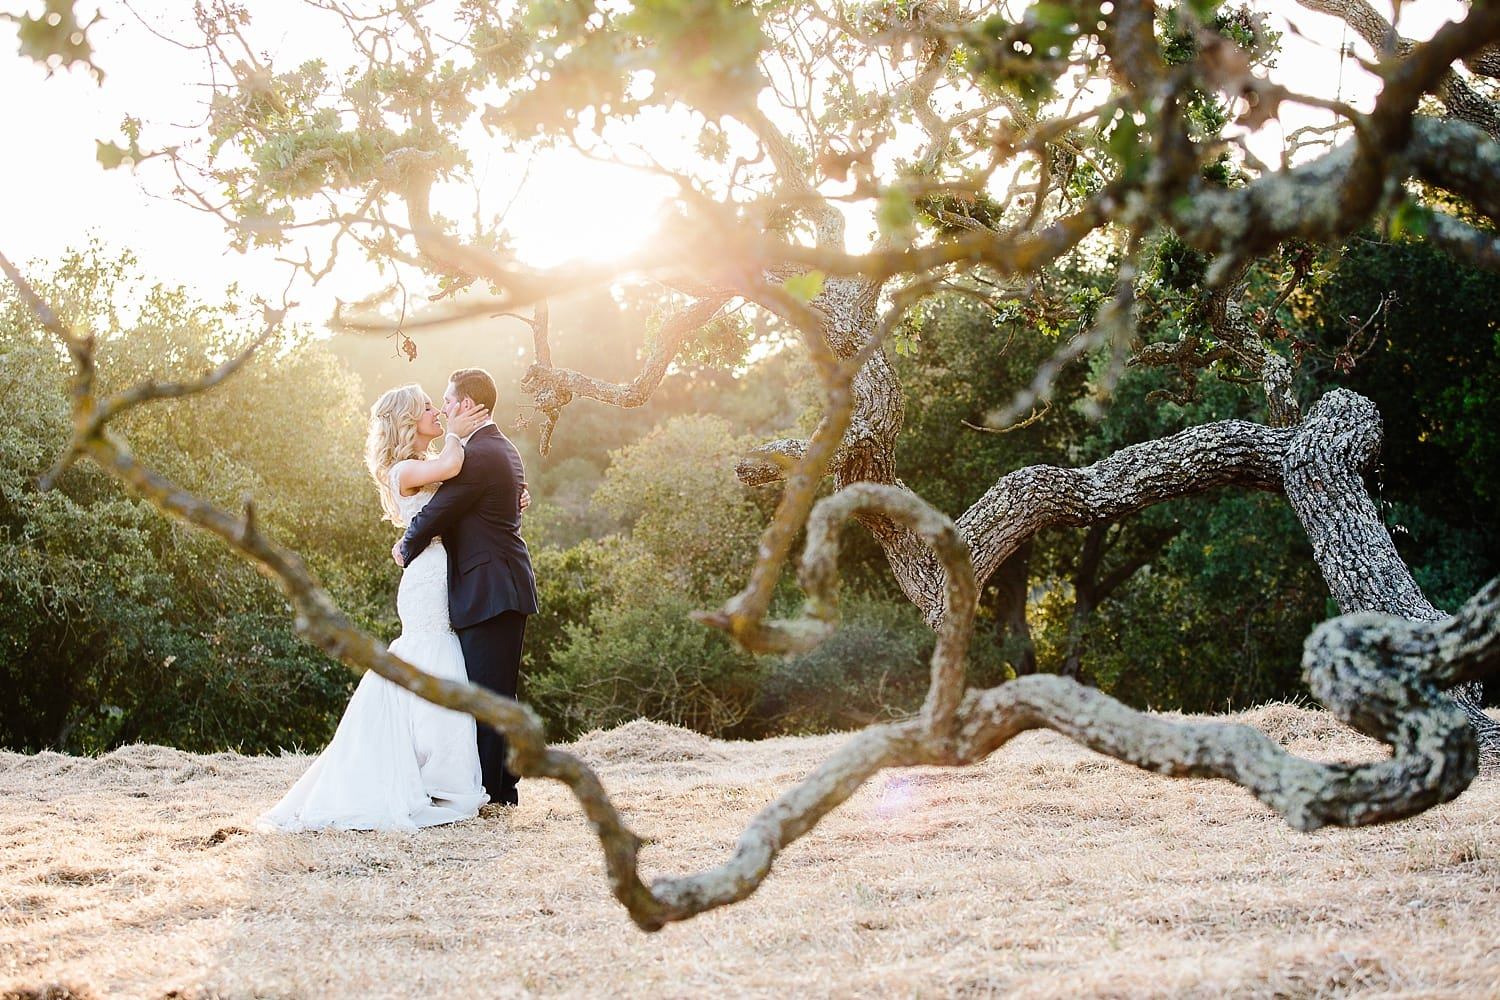 Outdoor wedding photography at Holman Ranch in Carmel Valley. Danielle Gillett Photography